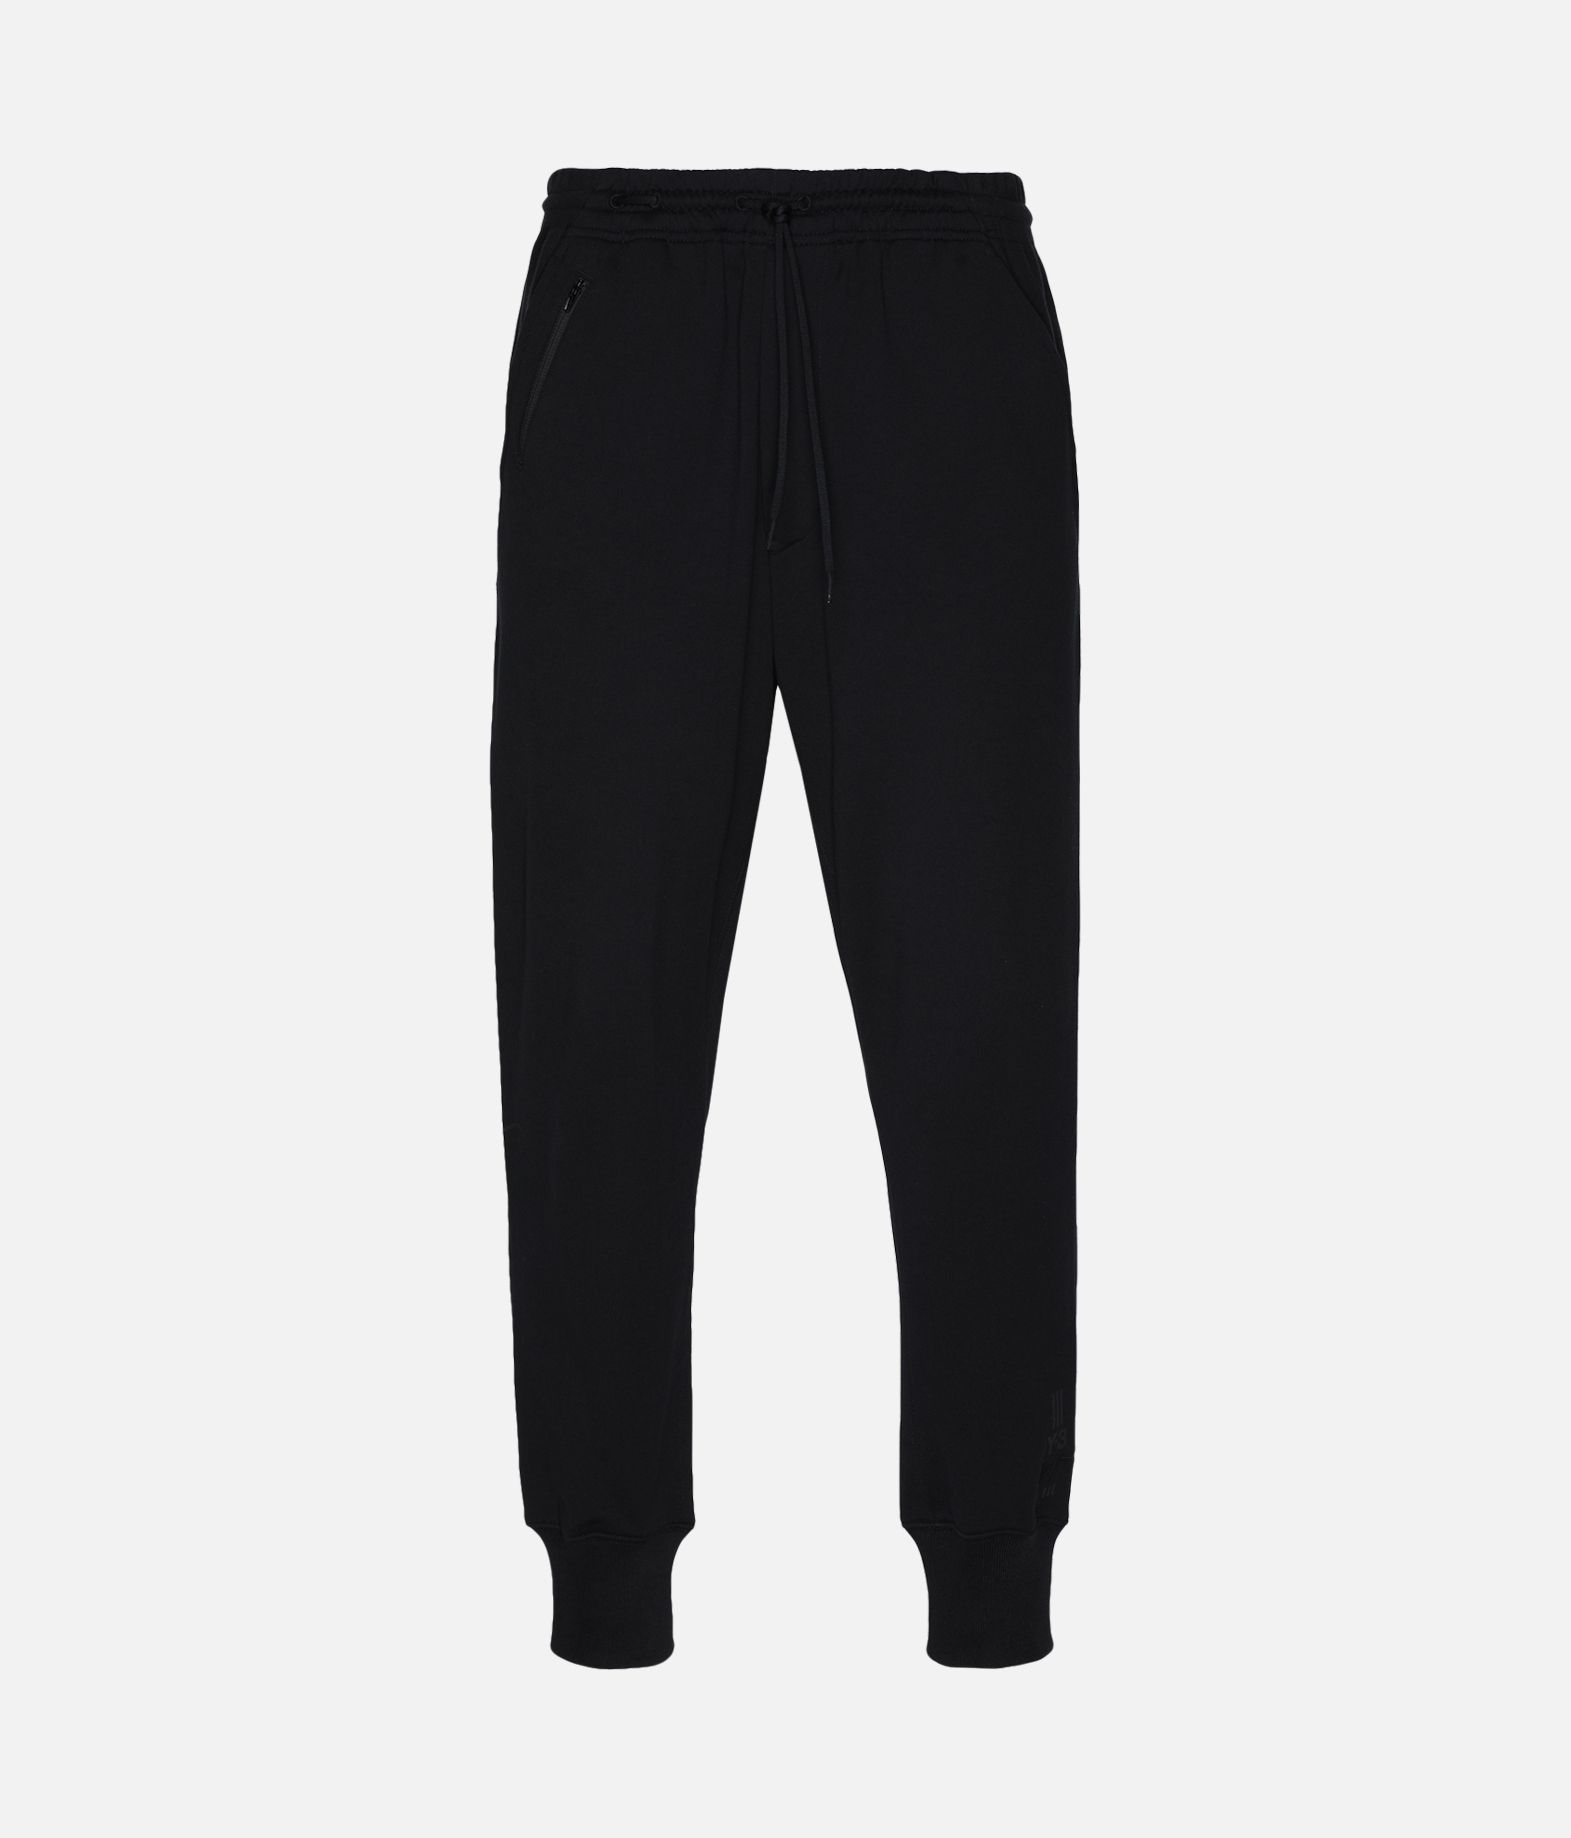 Y-3 Y-3 Classic Cuffed Pants Sweatpants Man f